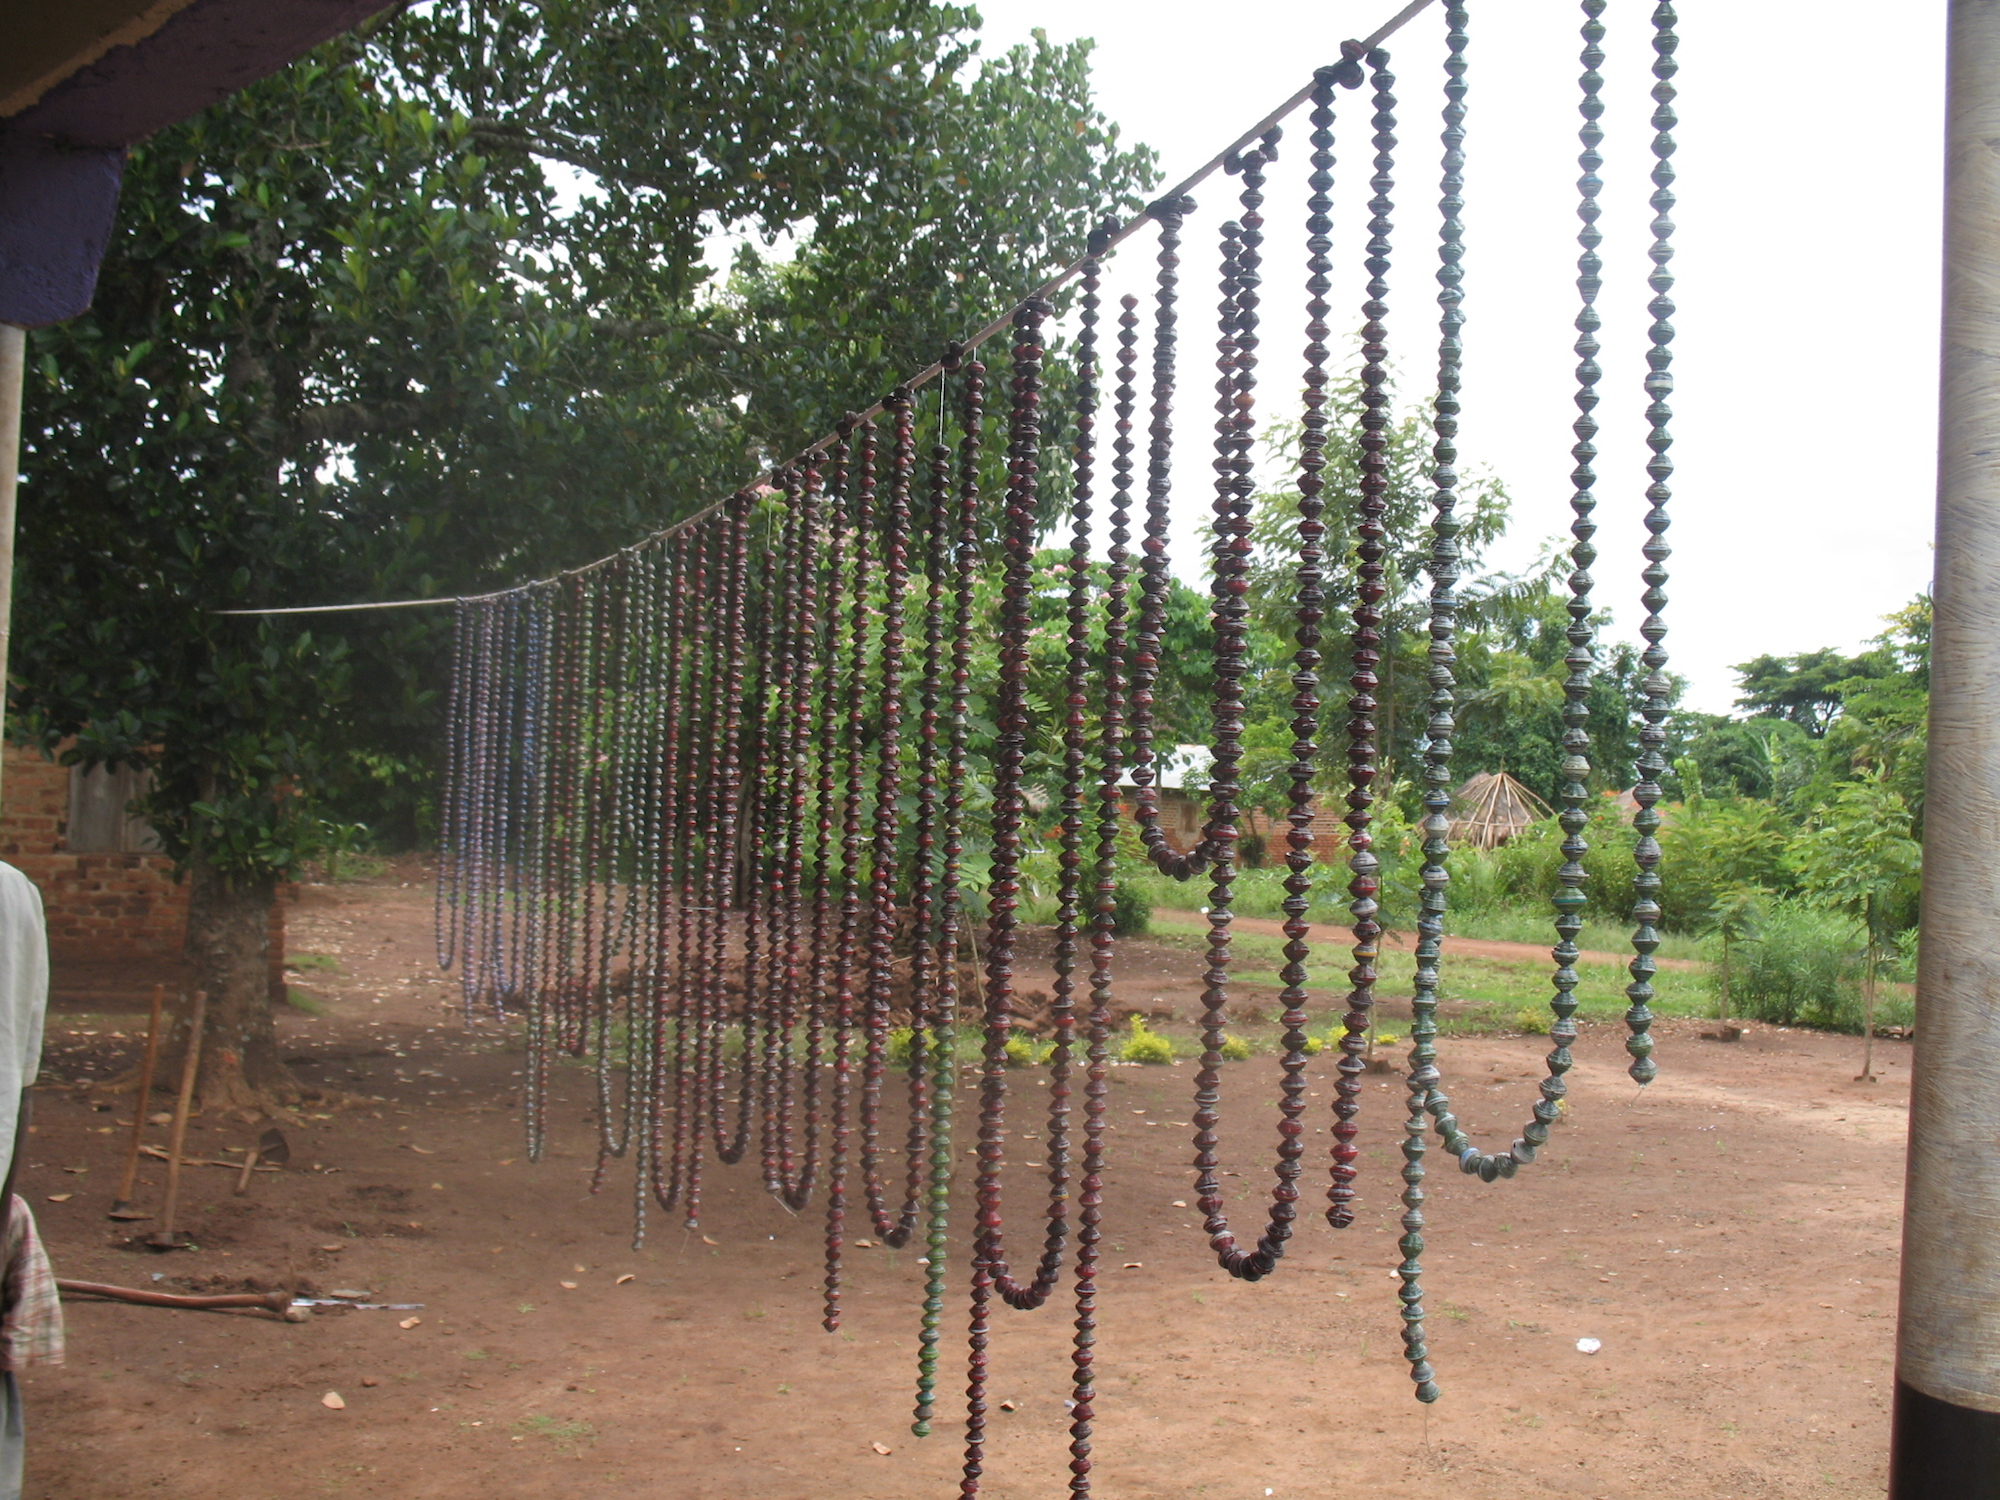 Strands of beads hanging